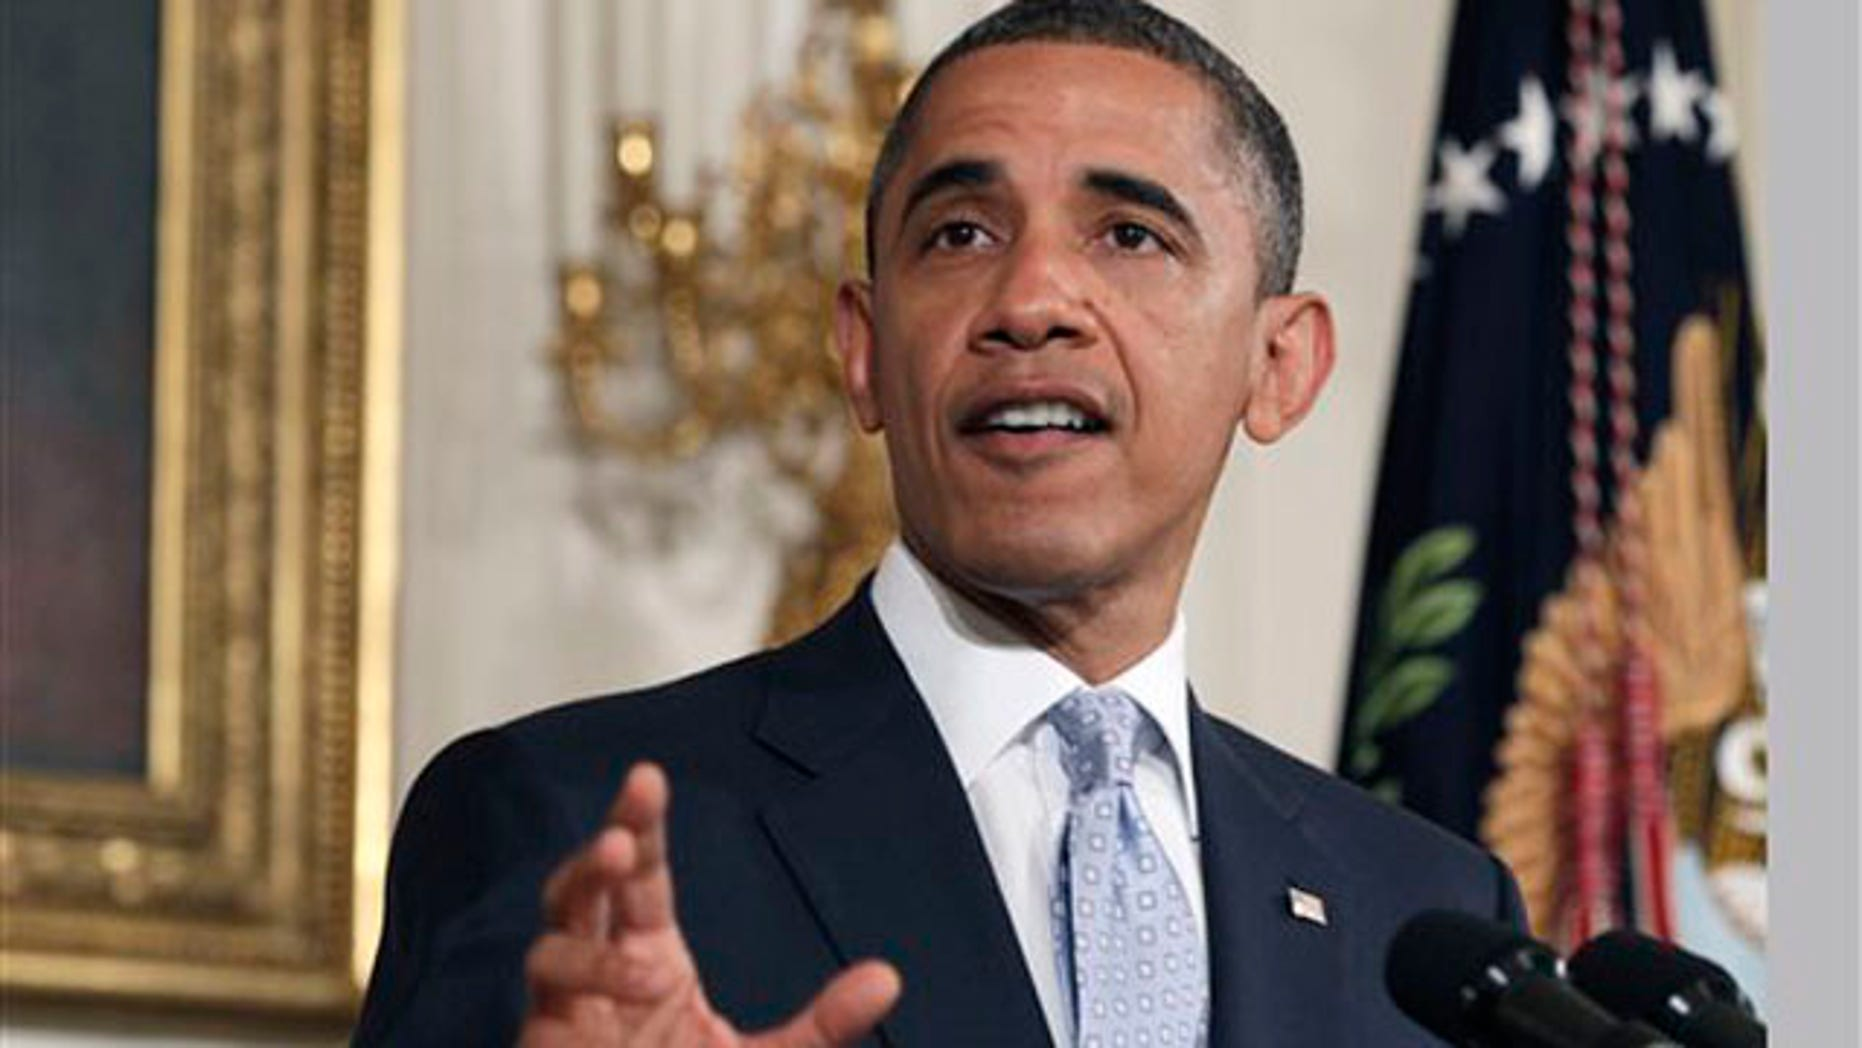 President Obama speaks about the economy and Wall Street in the White House Aug. 8.